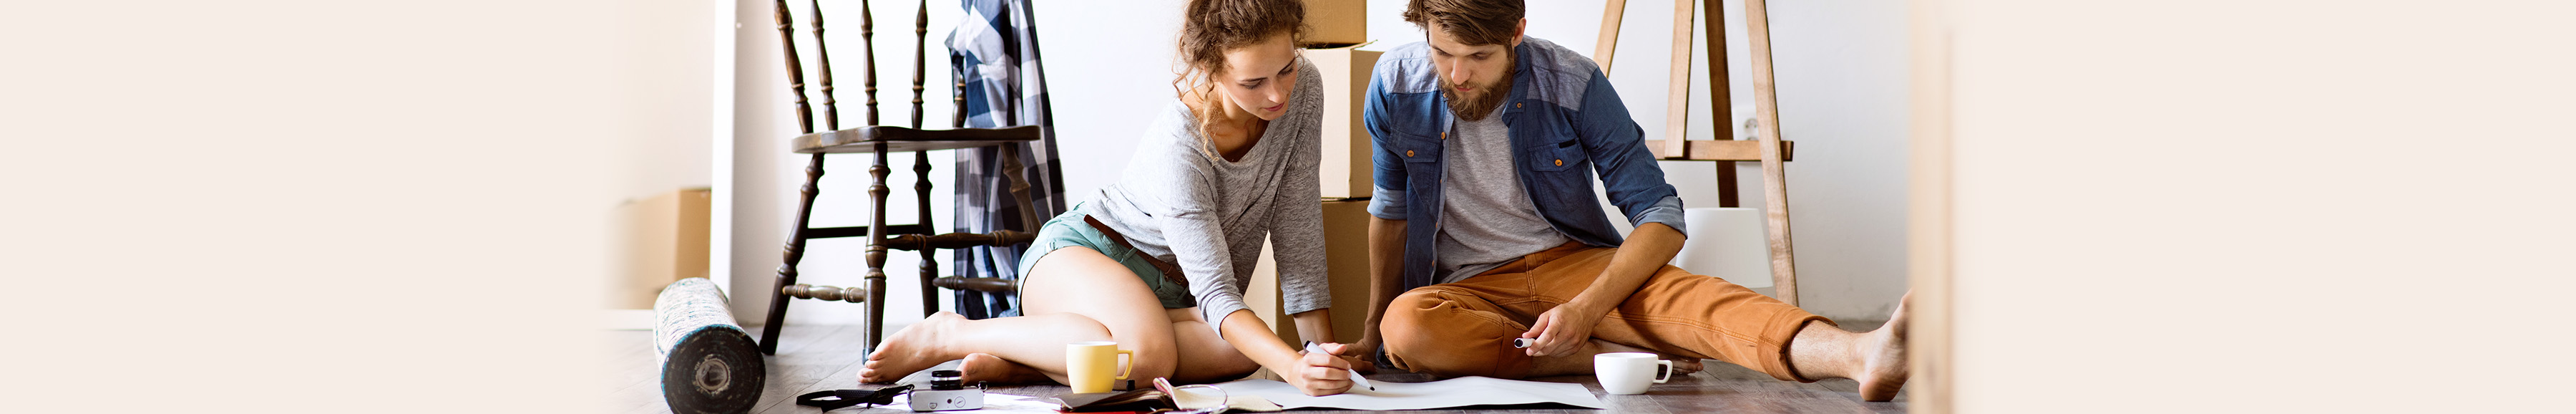 Couple sitting on floor in apartment with moving boxes